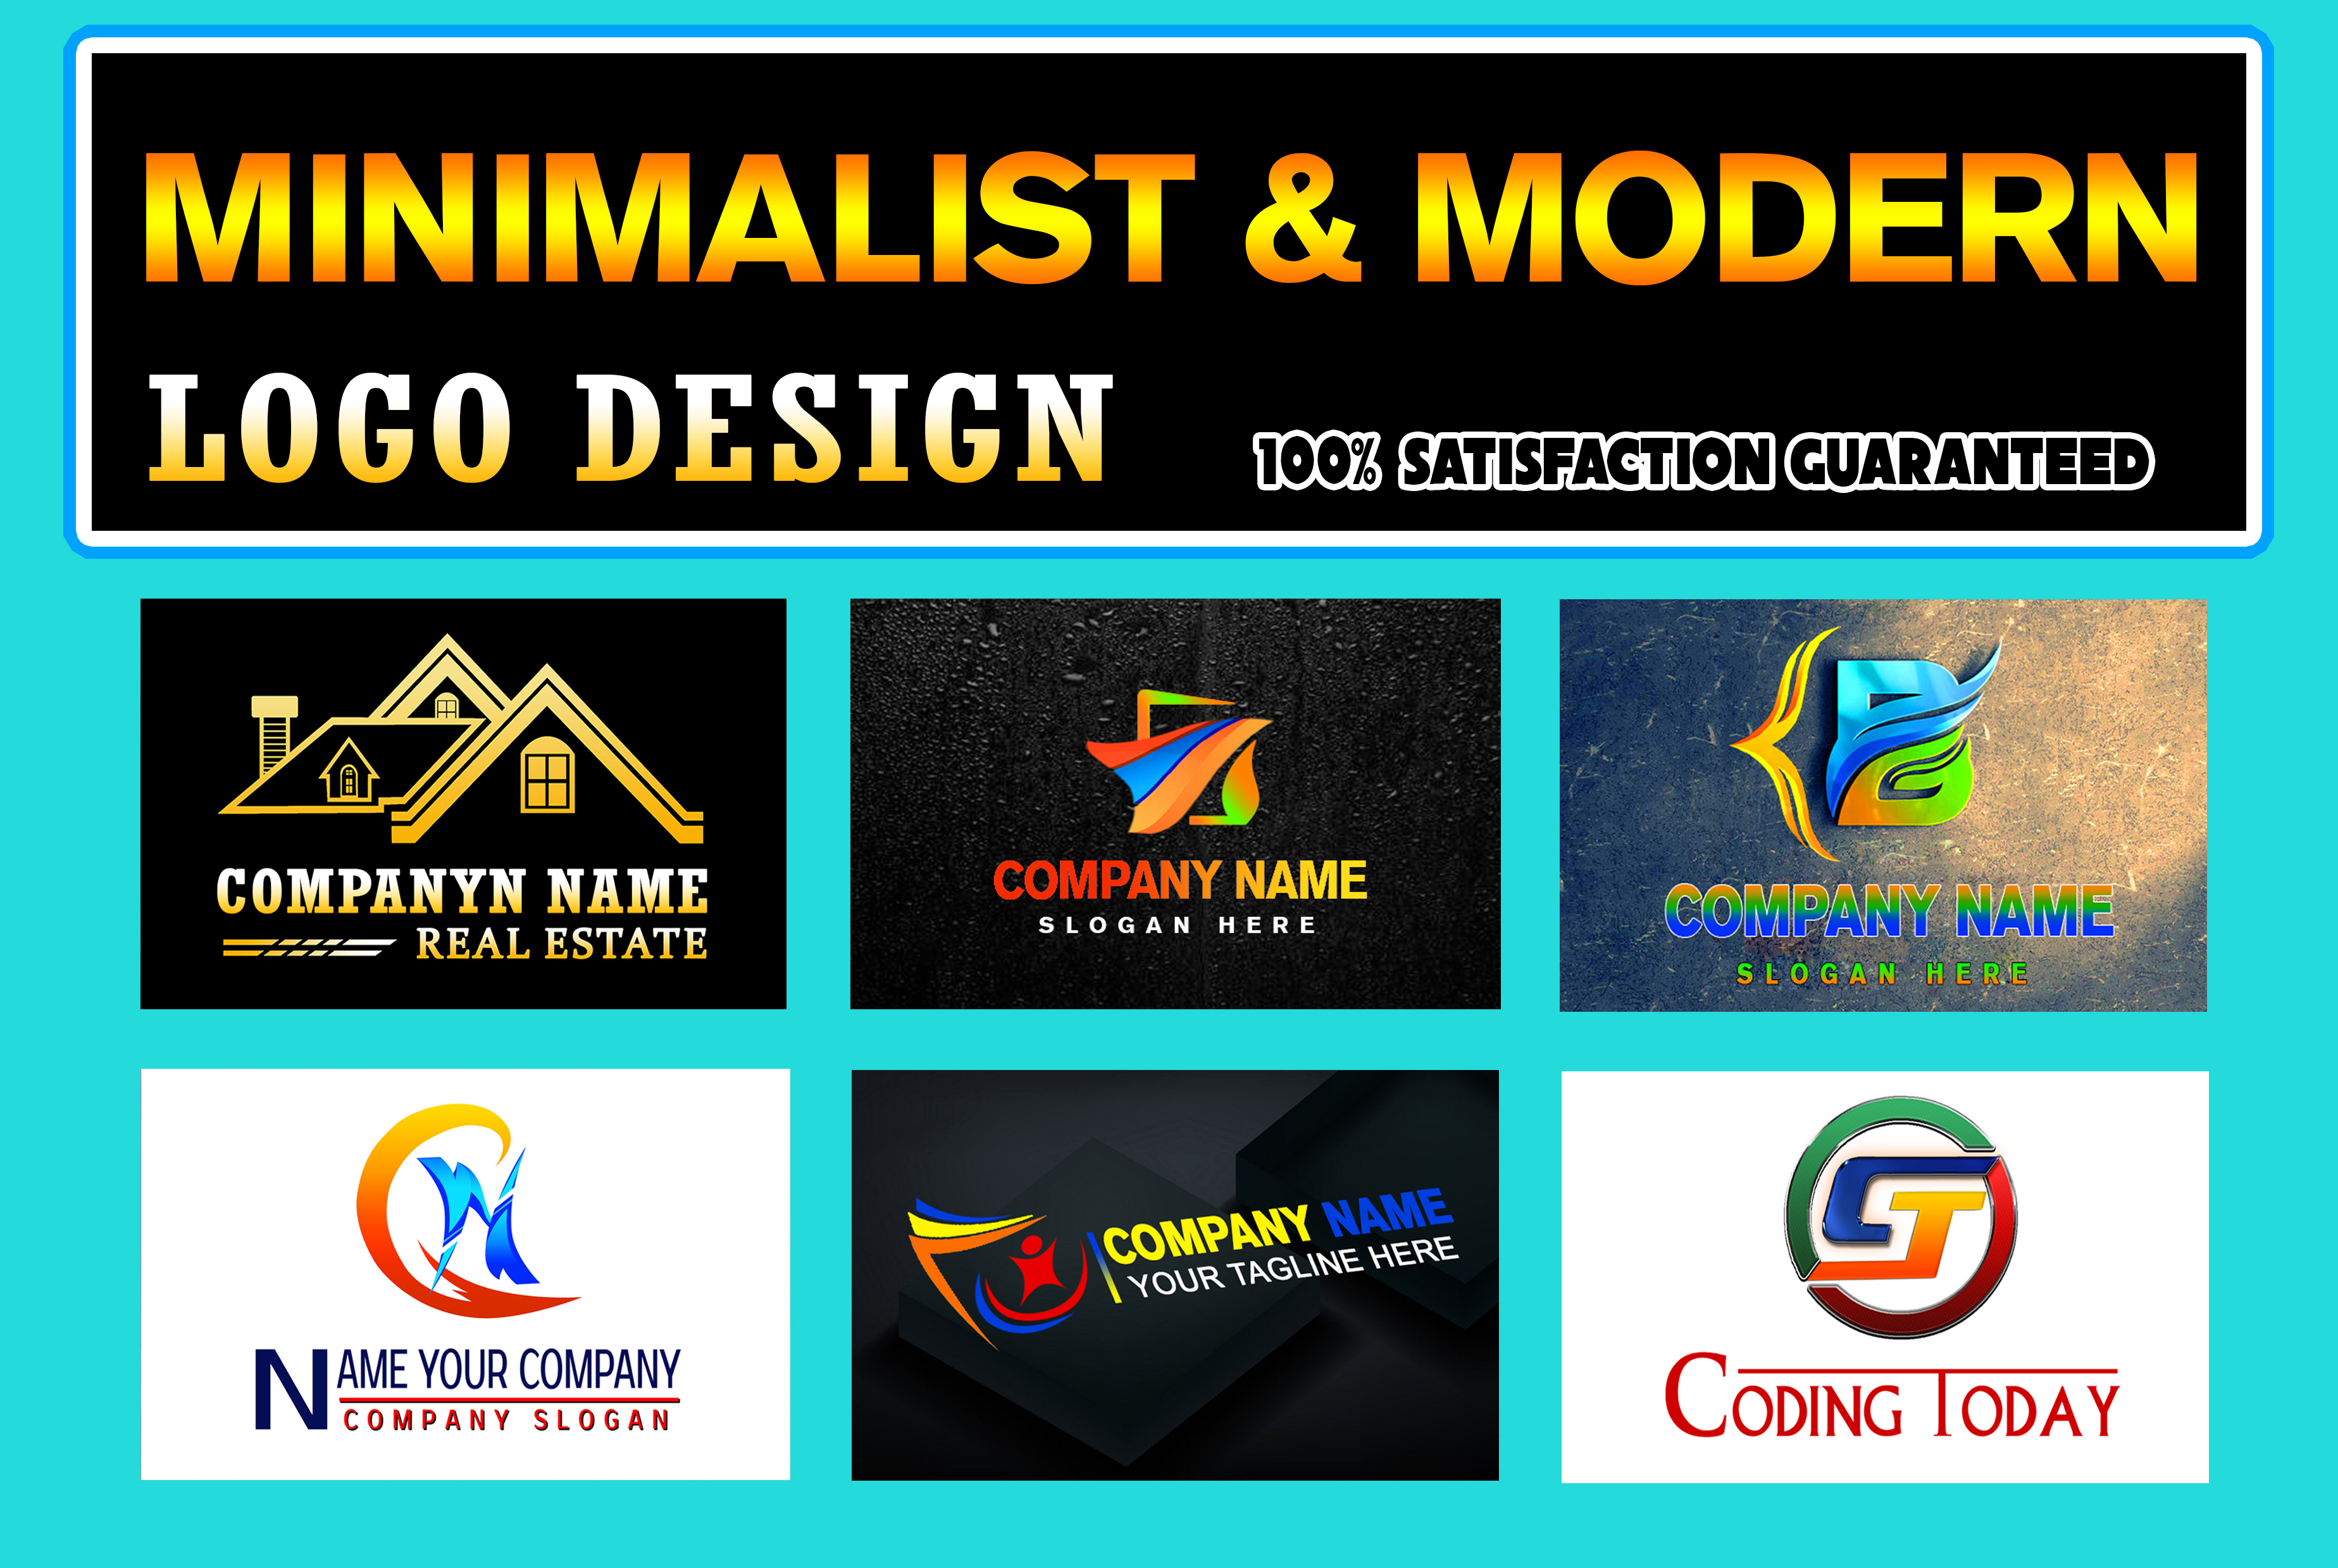 I will do minimalist and modern logo design for your business,  brand or company